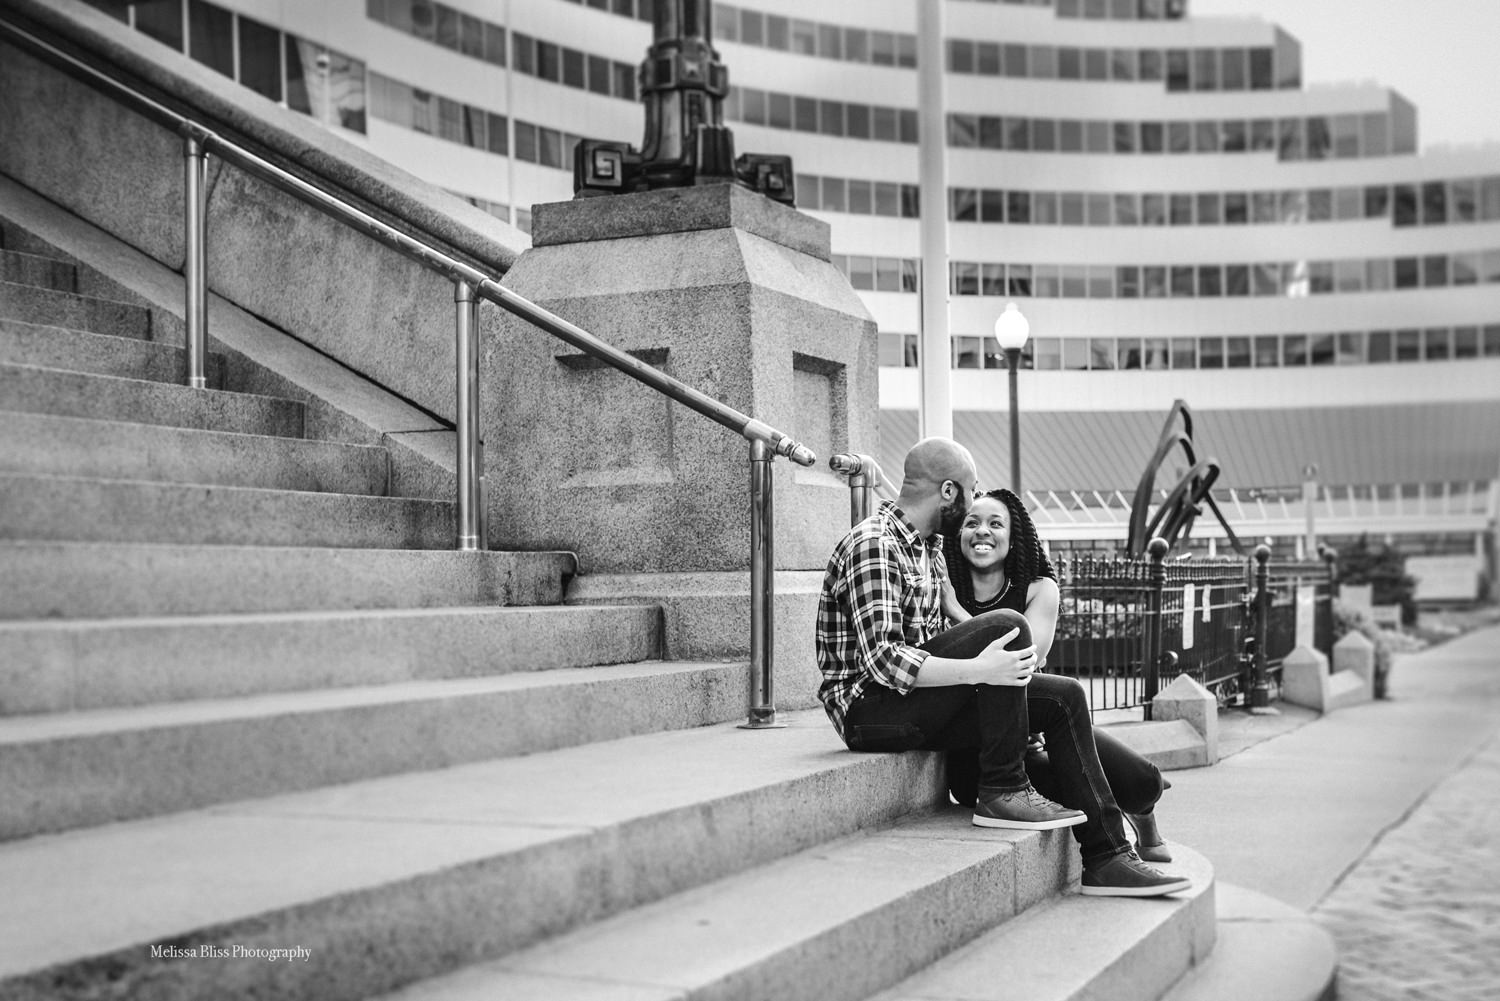 photo-locations-downtown-norfolk-engagement-photos-melissa-bliss-photography.jpg